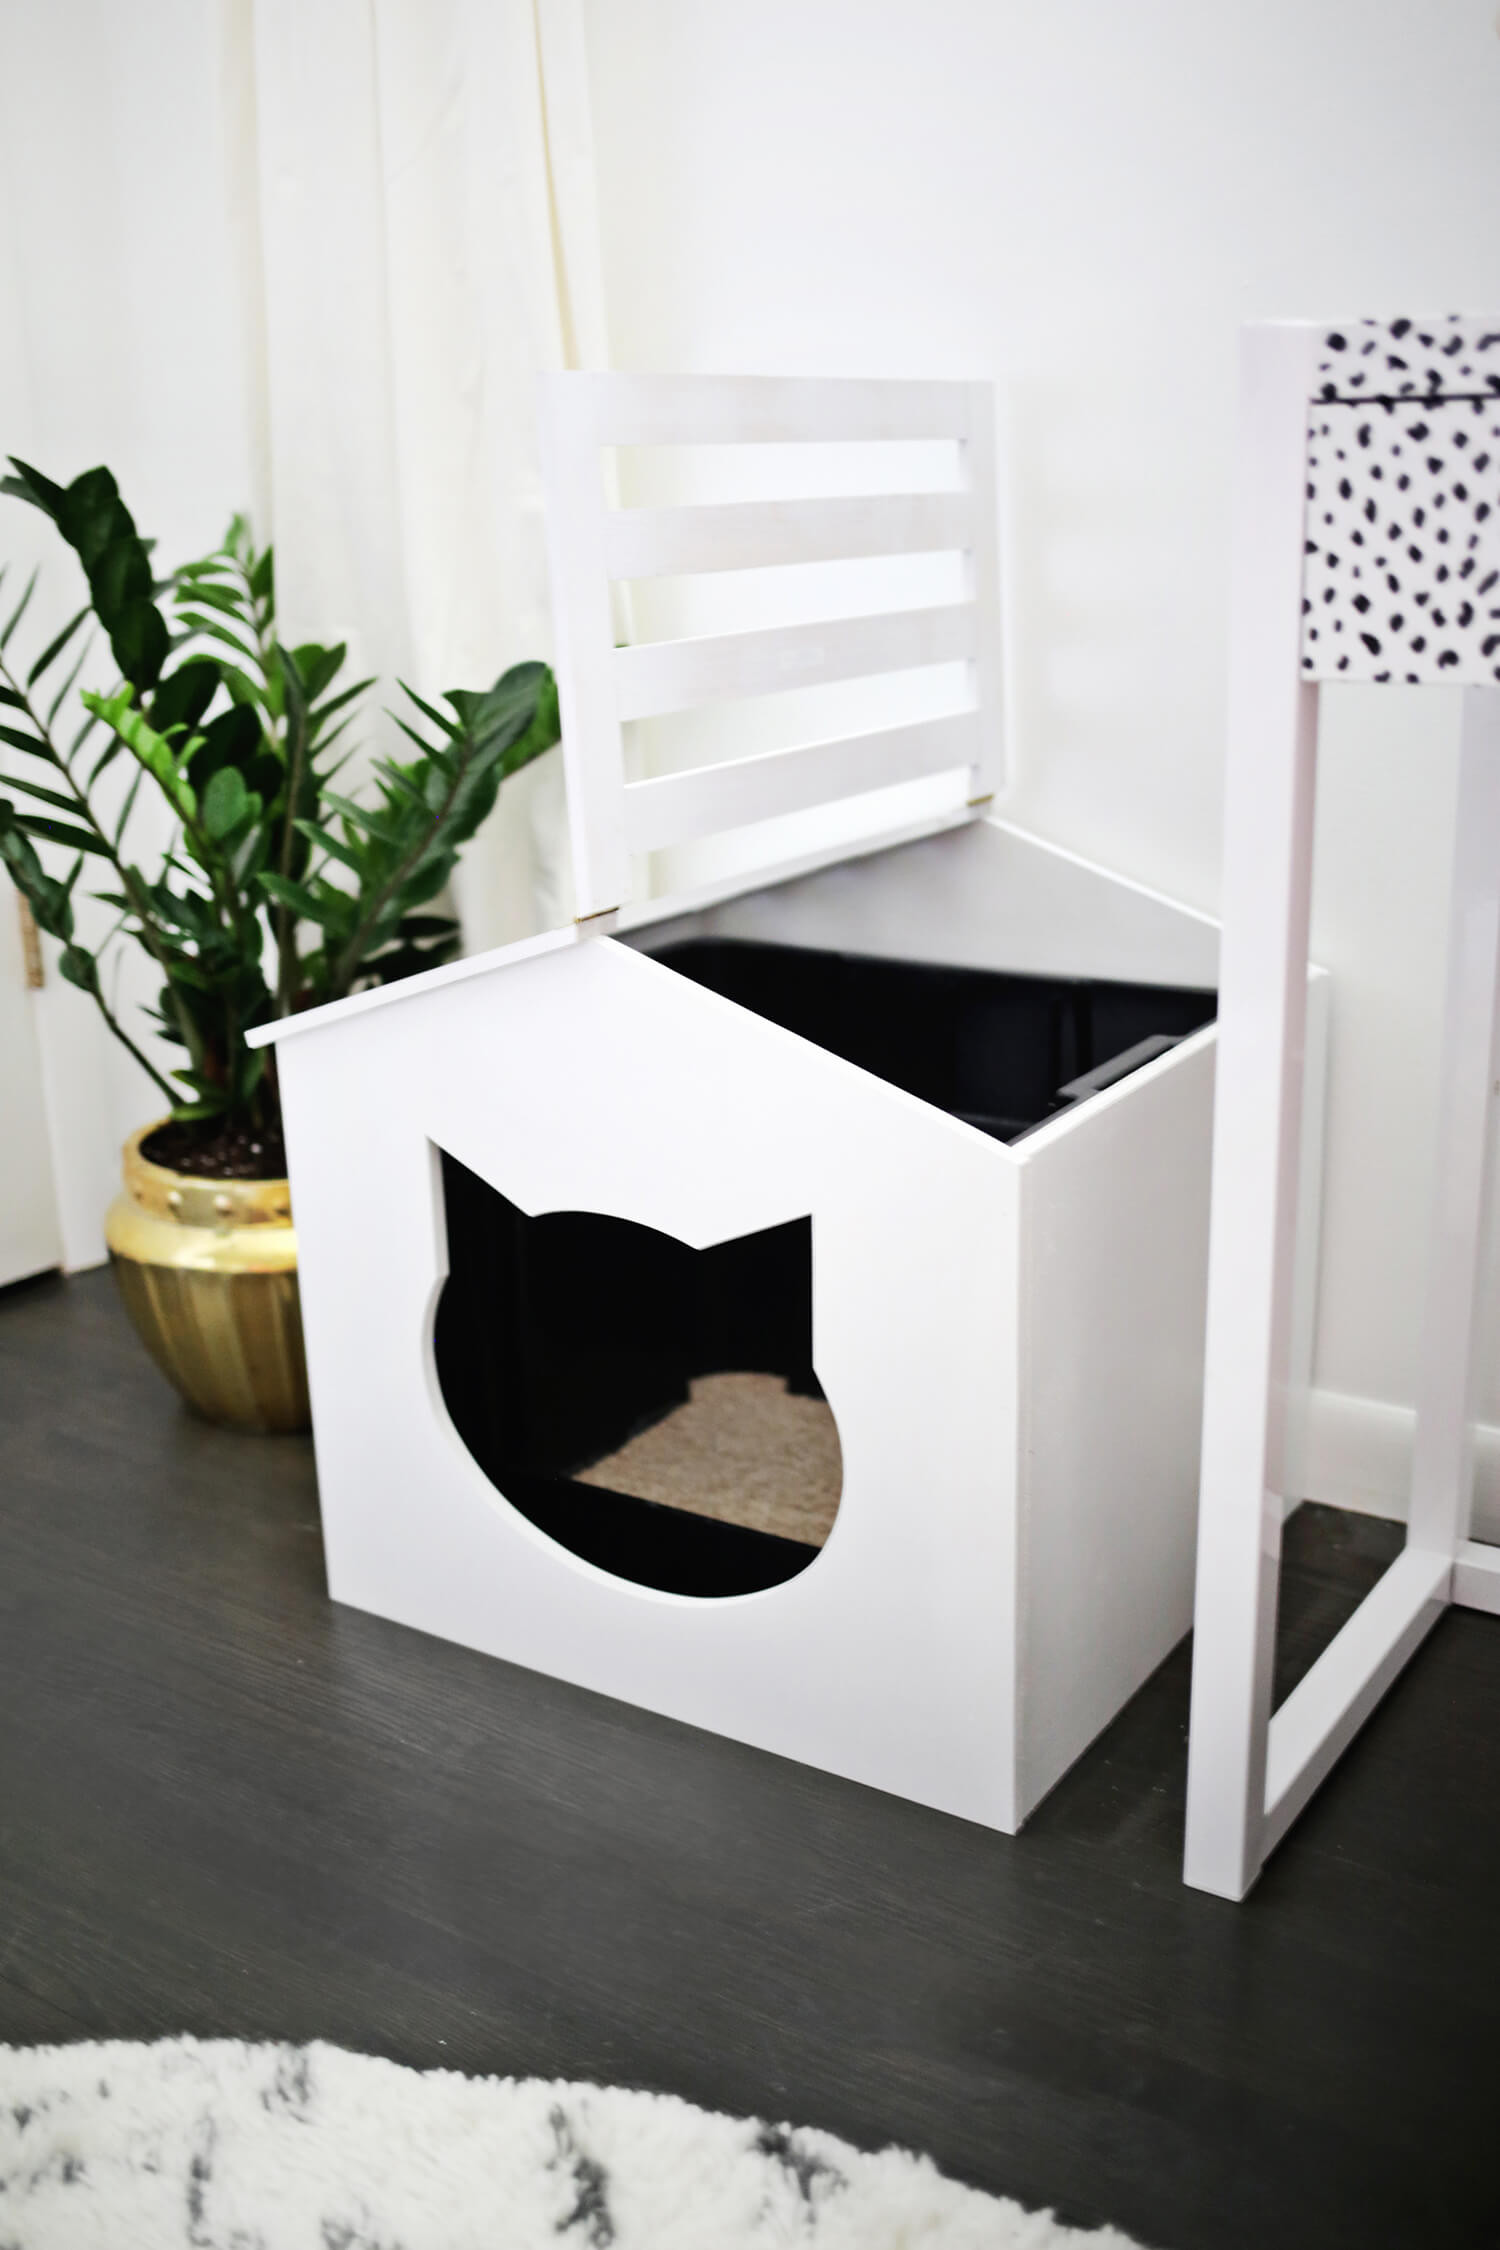 Best ideas about DIY Kitty Litter . Save or Pin Litter Box Cover DIY – A Beautiful Mess Now.